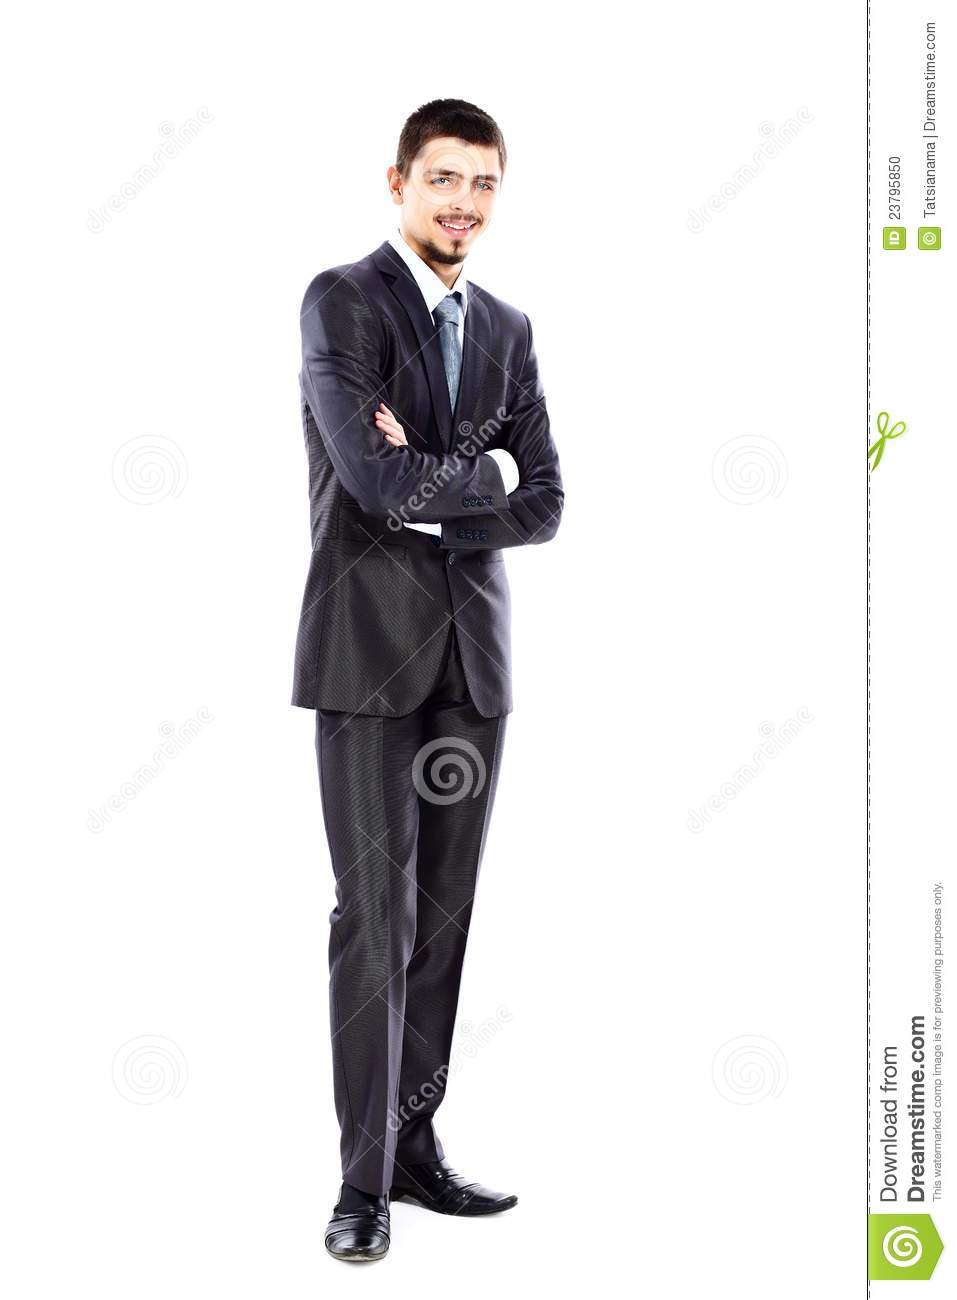 young-business-man-full-body-isolated-wh